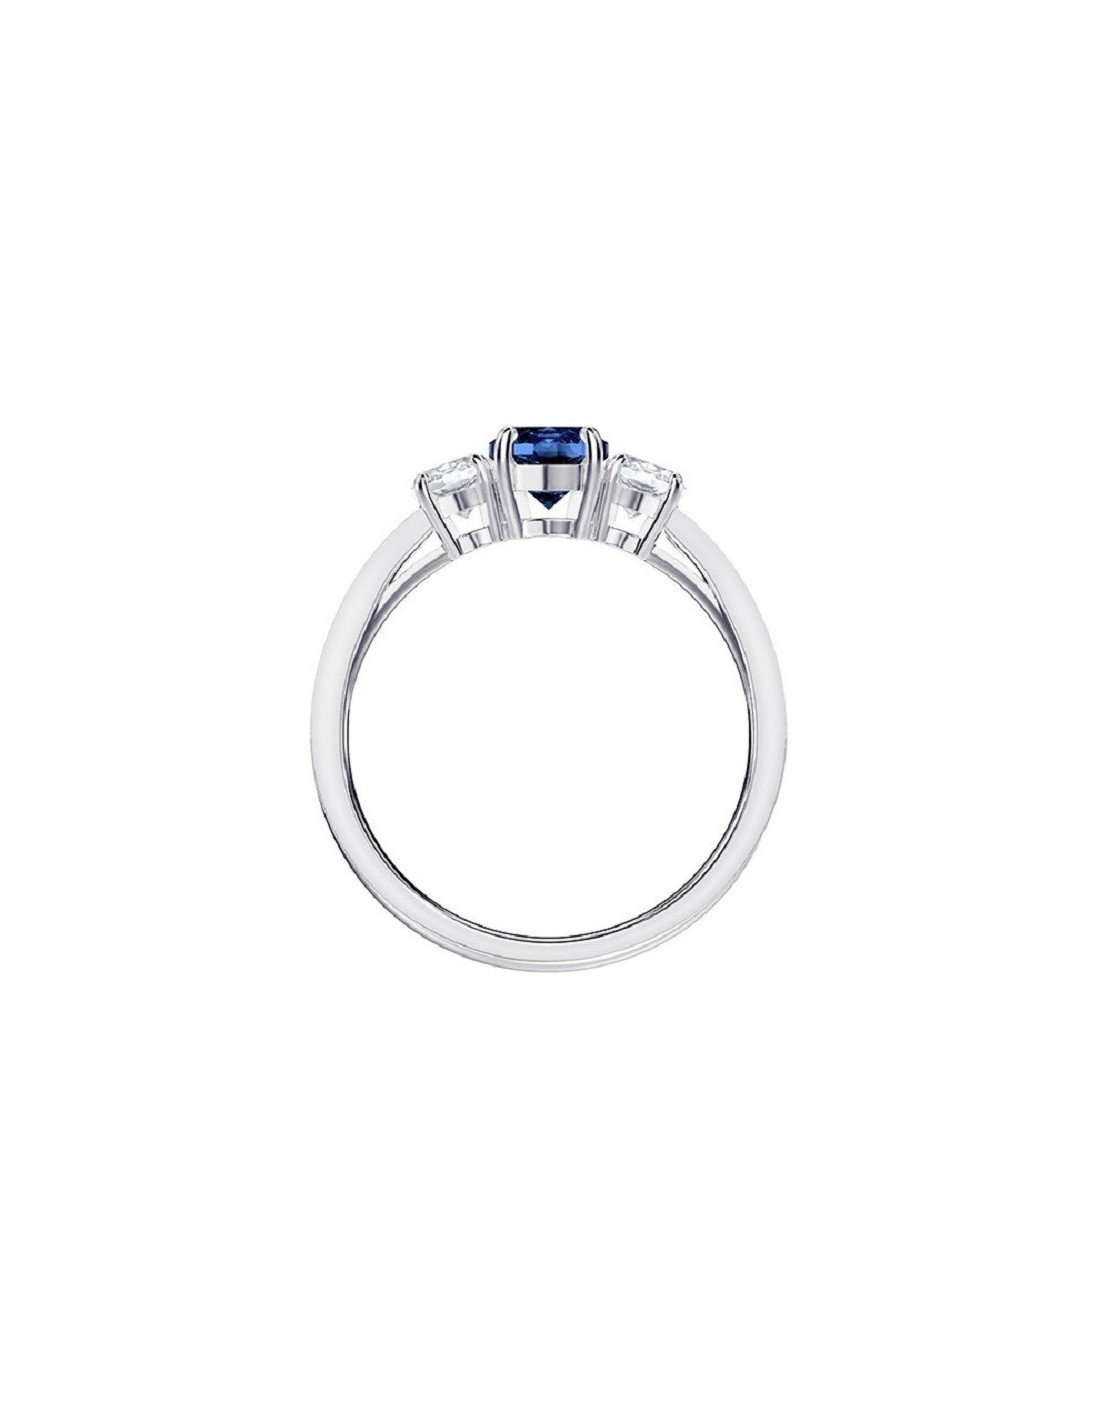 63331a43f ... Attract Ring Trilogy Round Swarovski blue jewelry size 55 5416152.  Previous